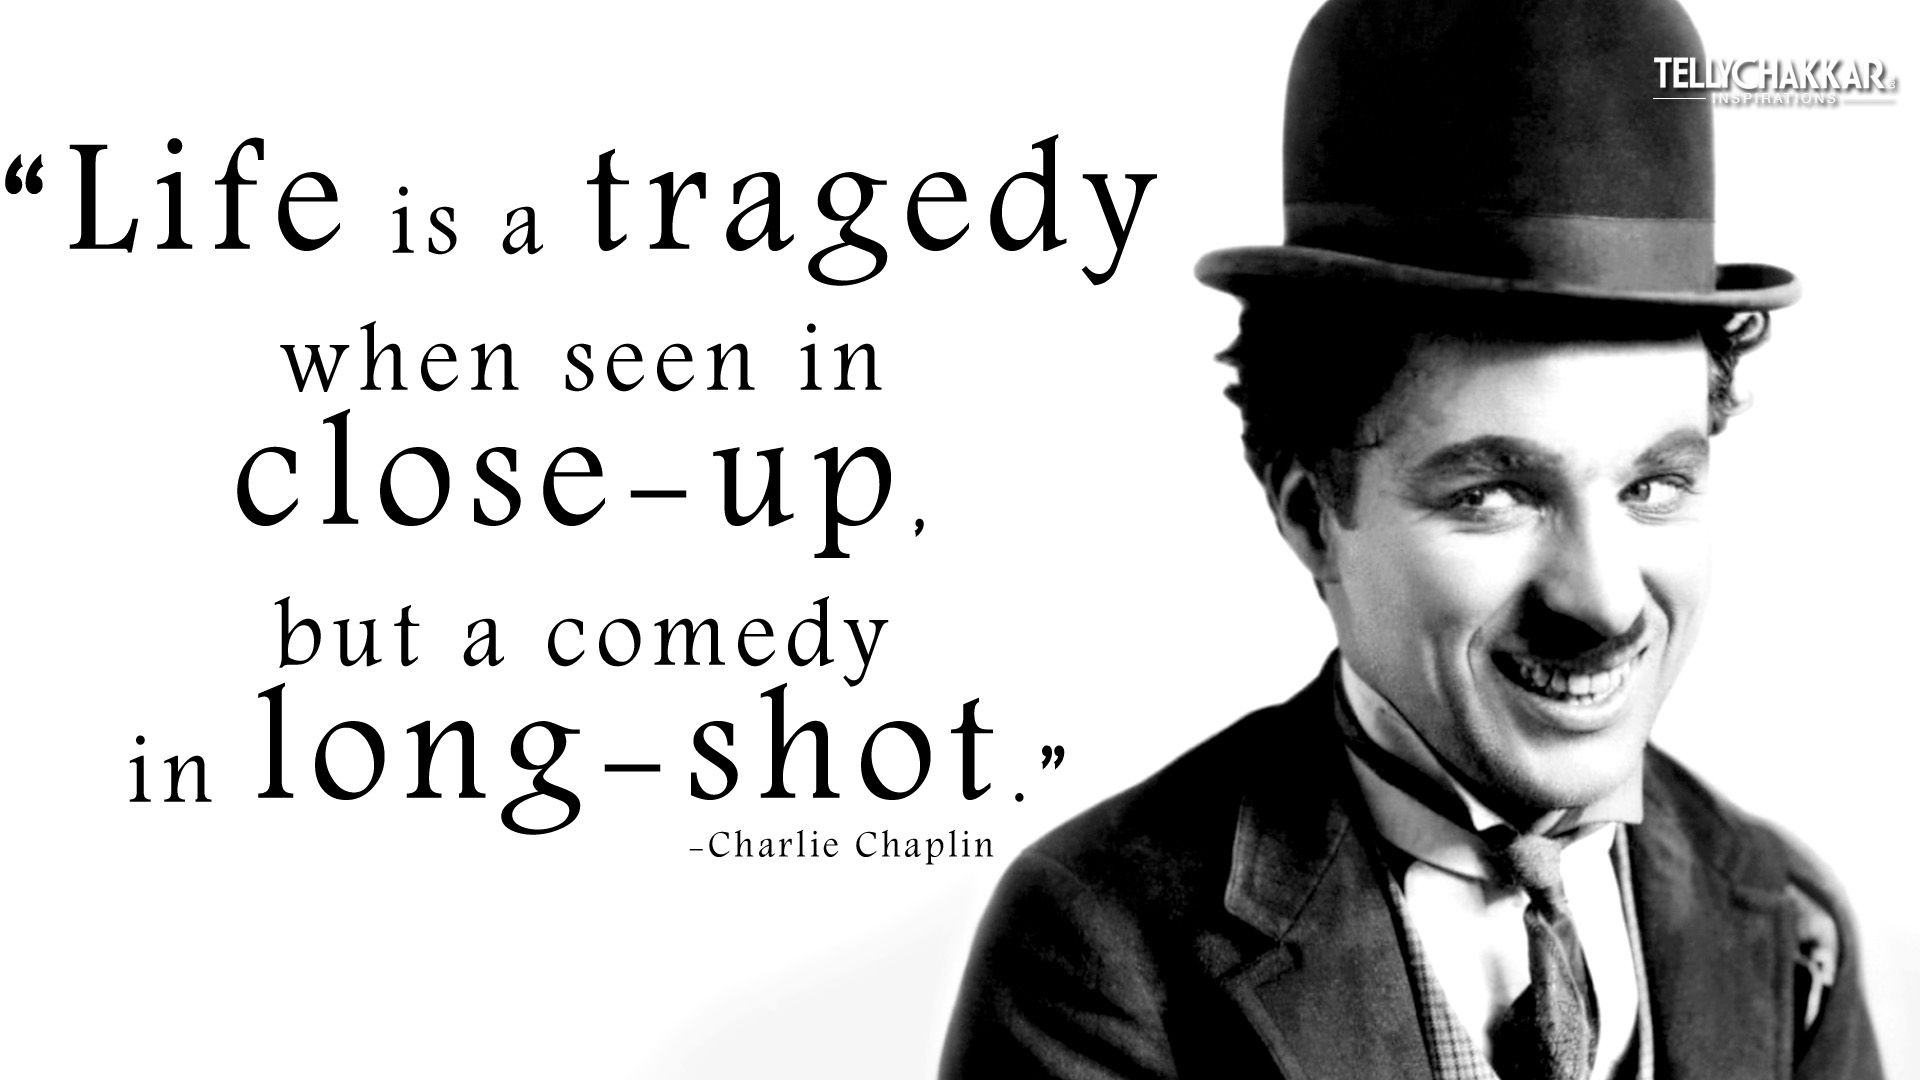 Charlie Chaplin How Africa News